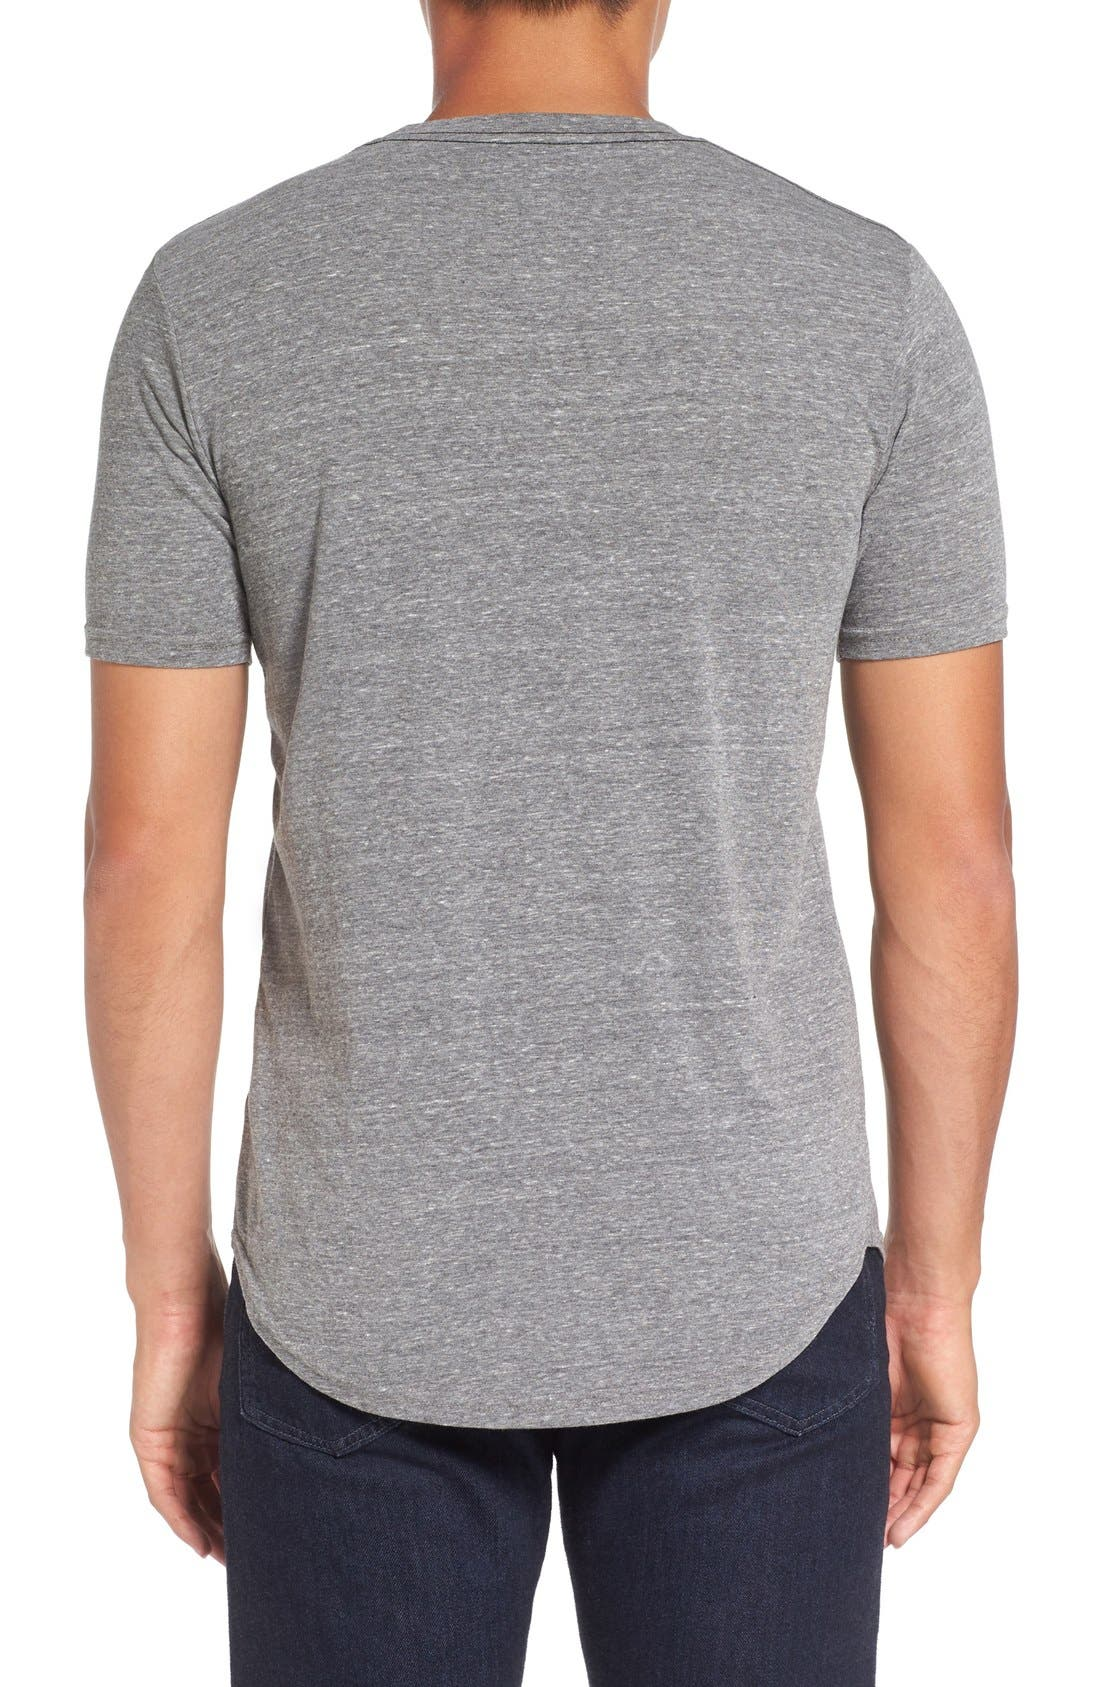 Triblend Scallop Crewneck T-Shirt,                             Alternate thumbnail 3, color,                             HEATHER GREY